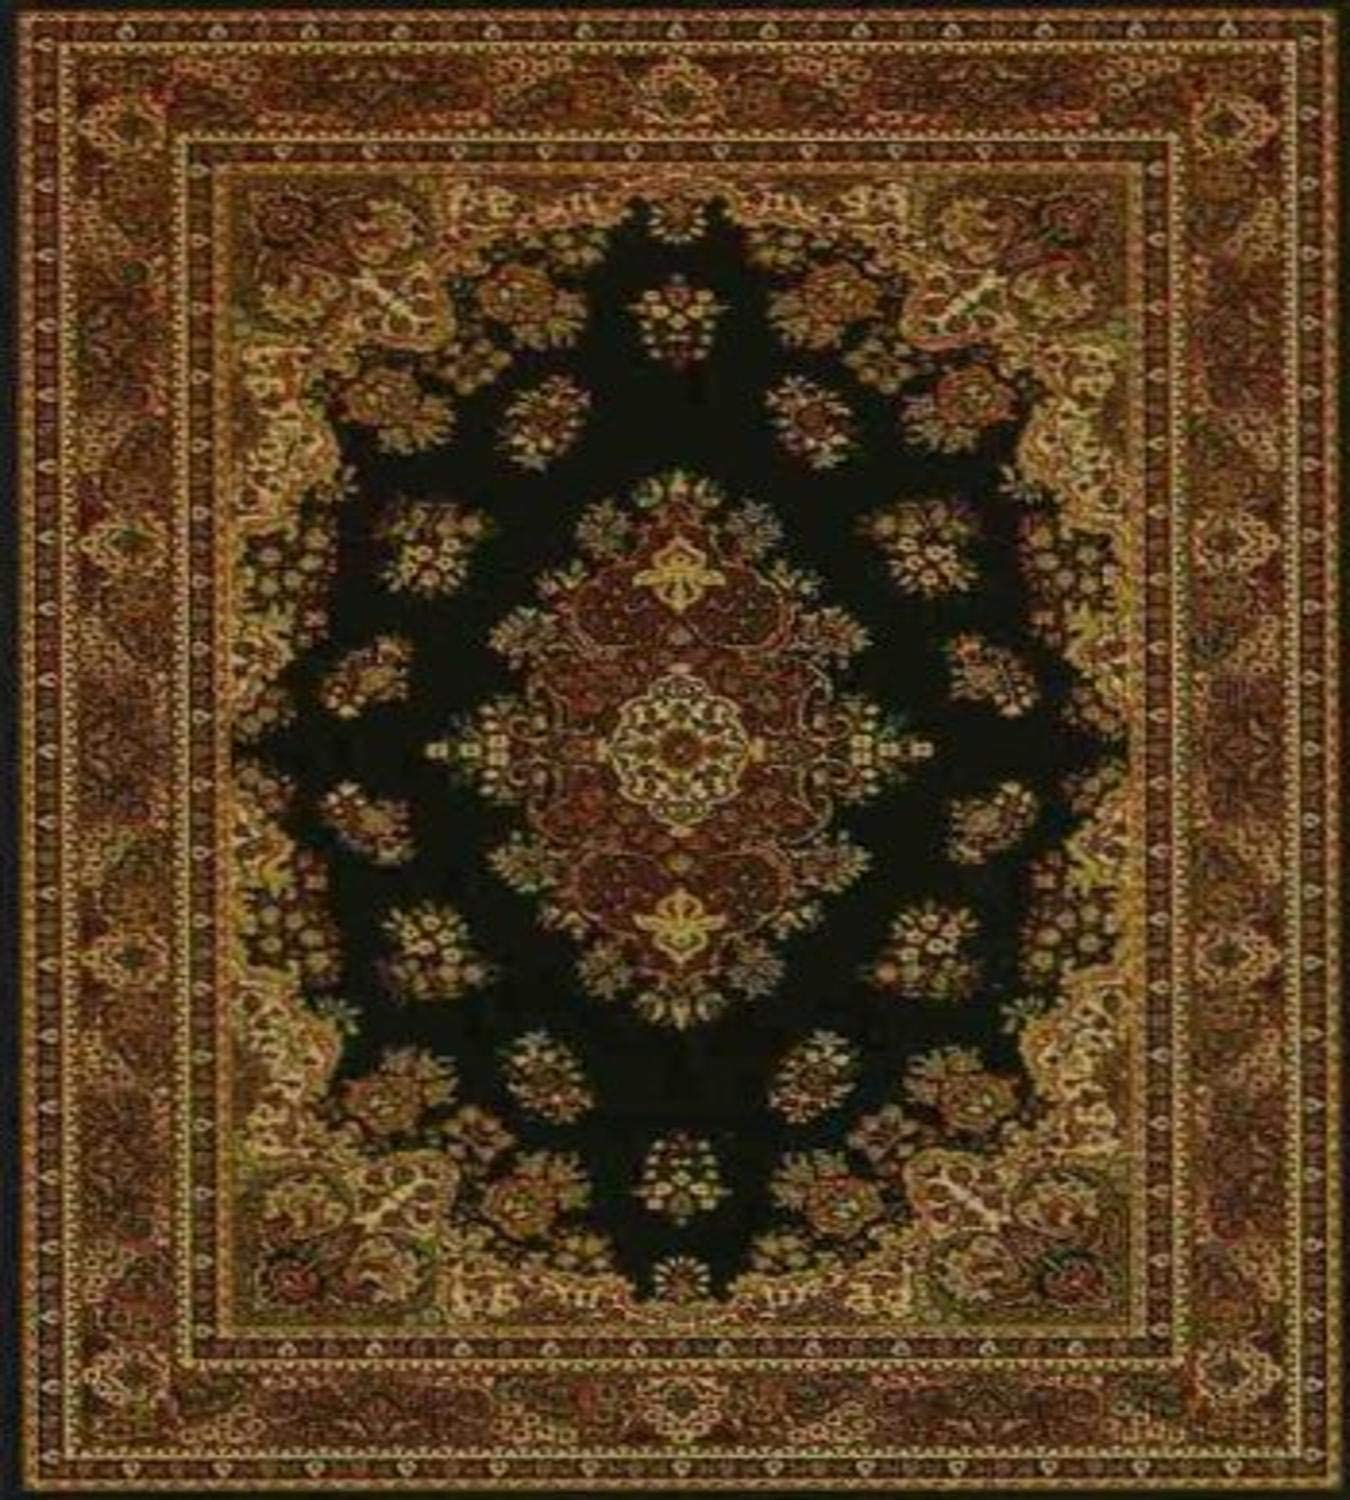 Some reservation LA Some reservation Rug 4'x6' Cosmos